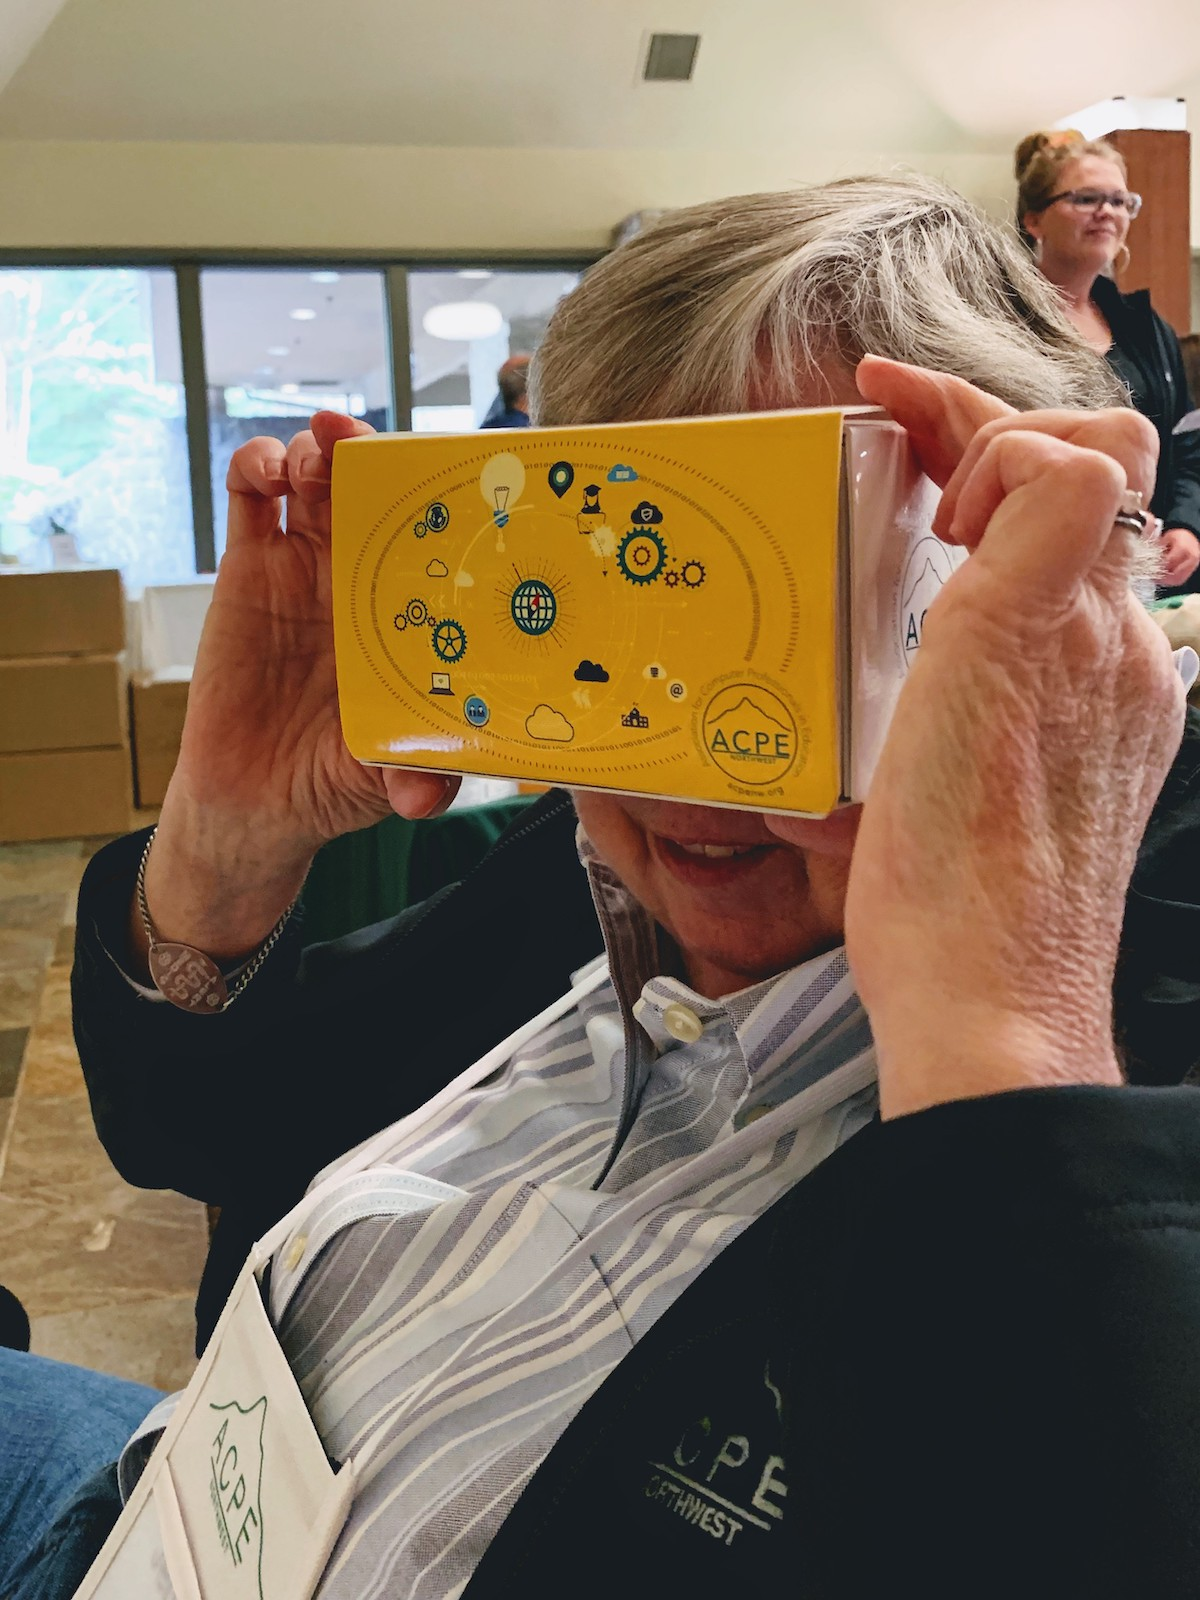 ACPE attendee with VR viewer